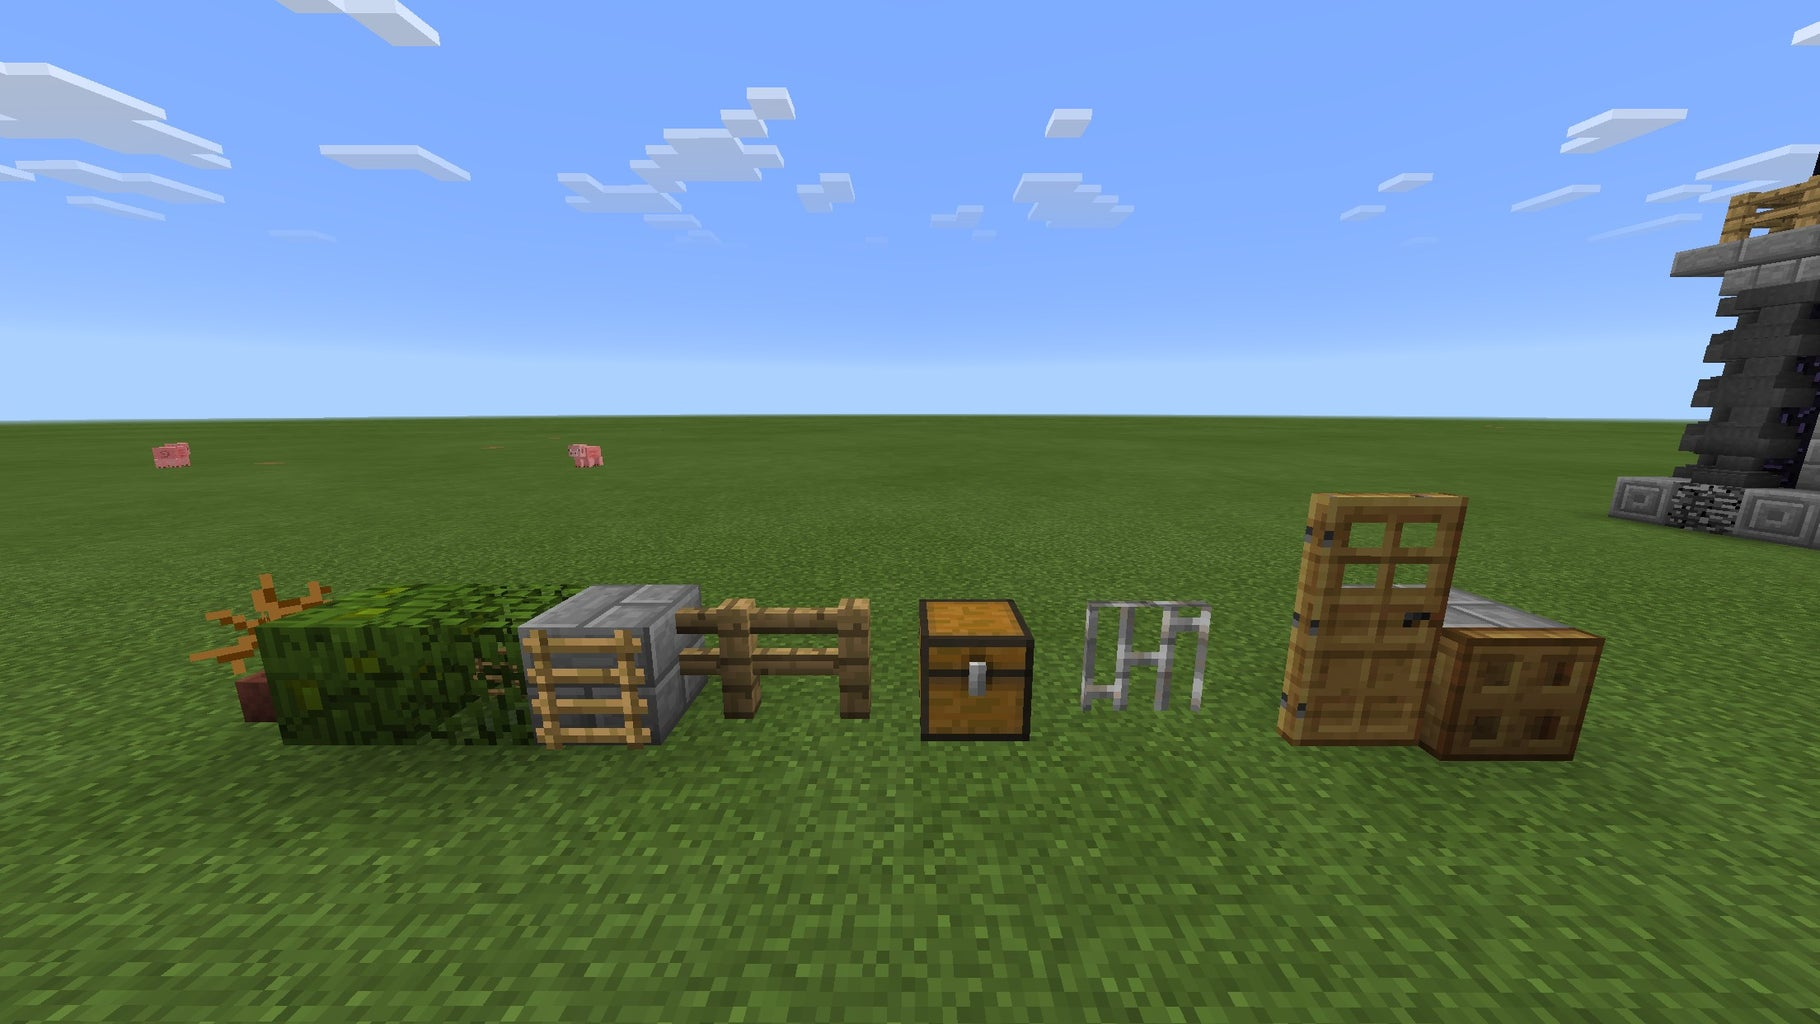 What You Need (Supplies/Bricks)